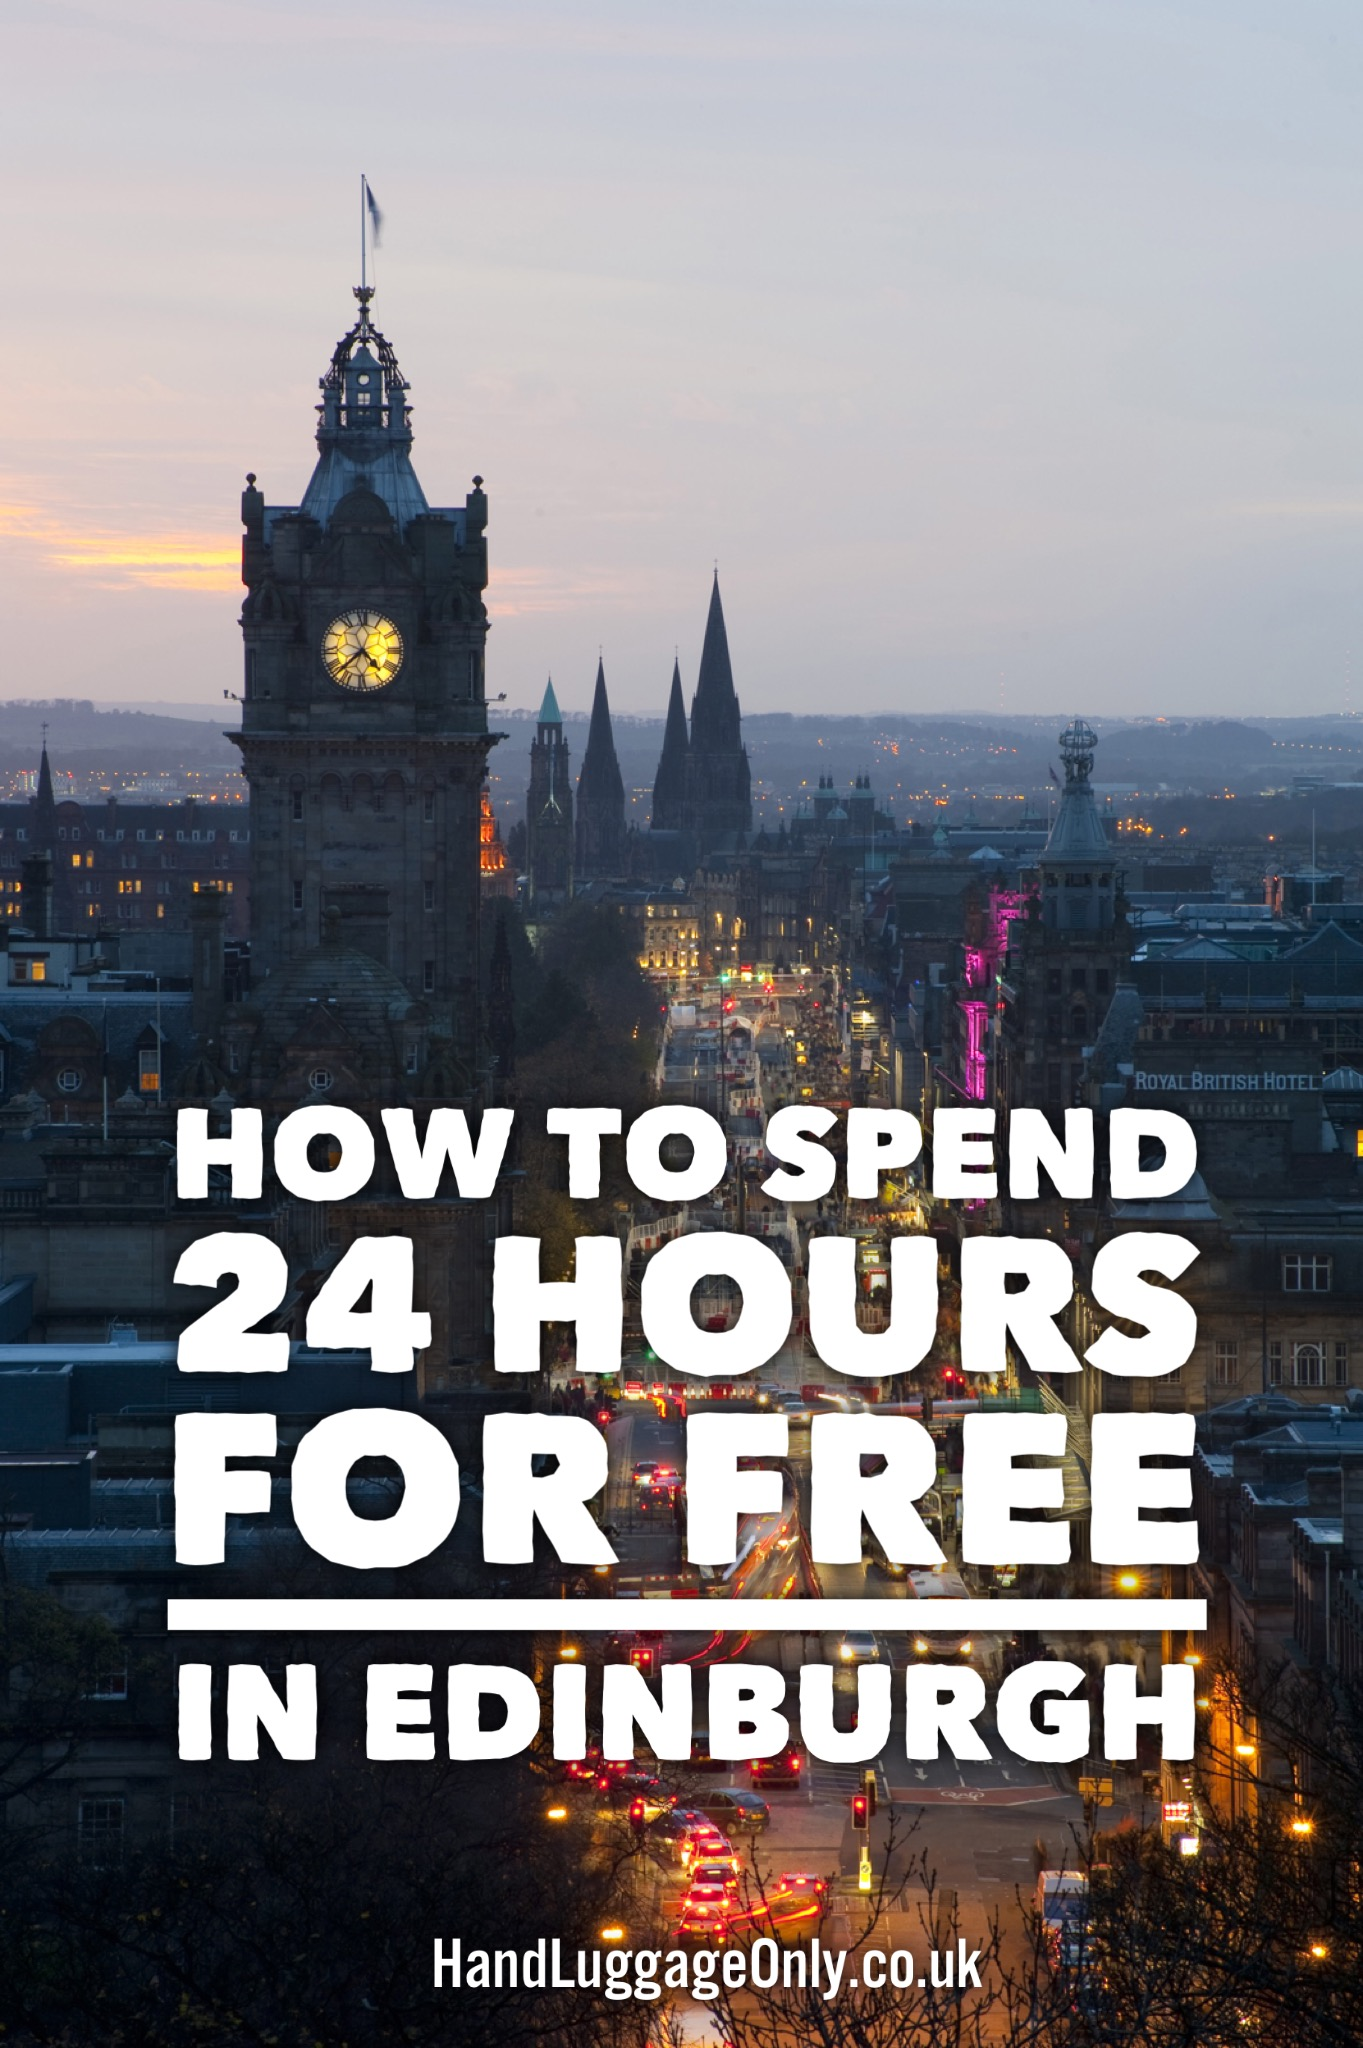 Here's How To Spend 24 Hours For Free In Edinburgh!